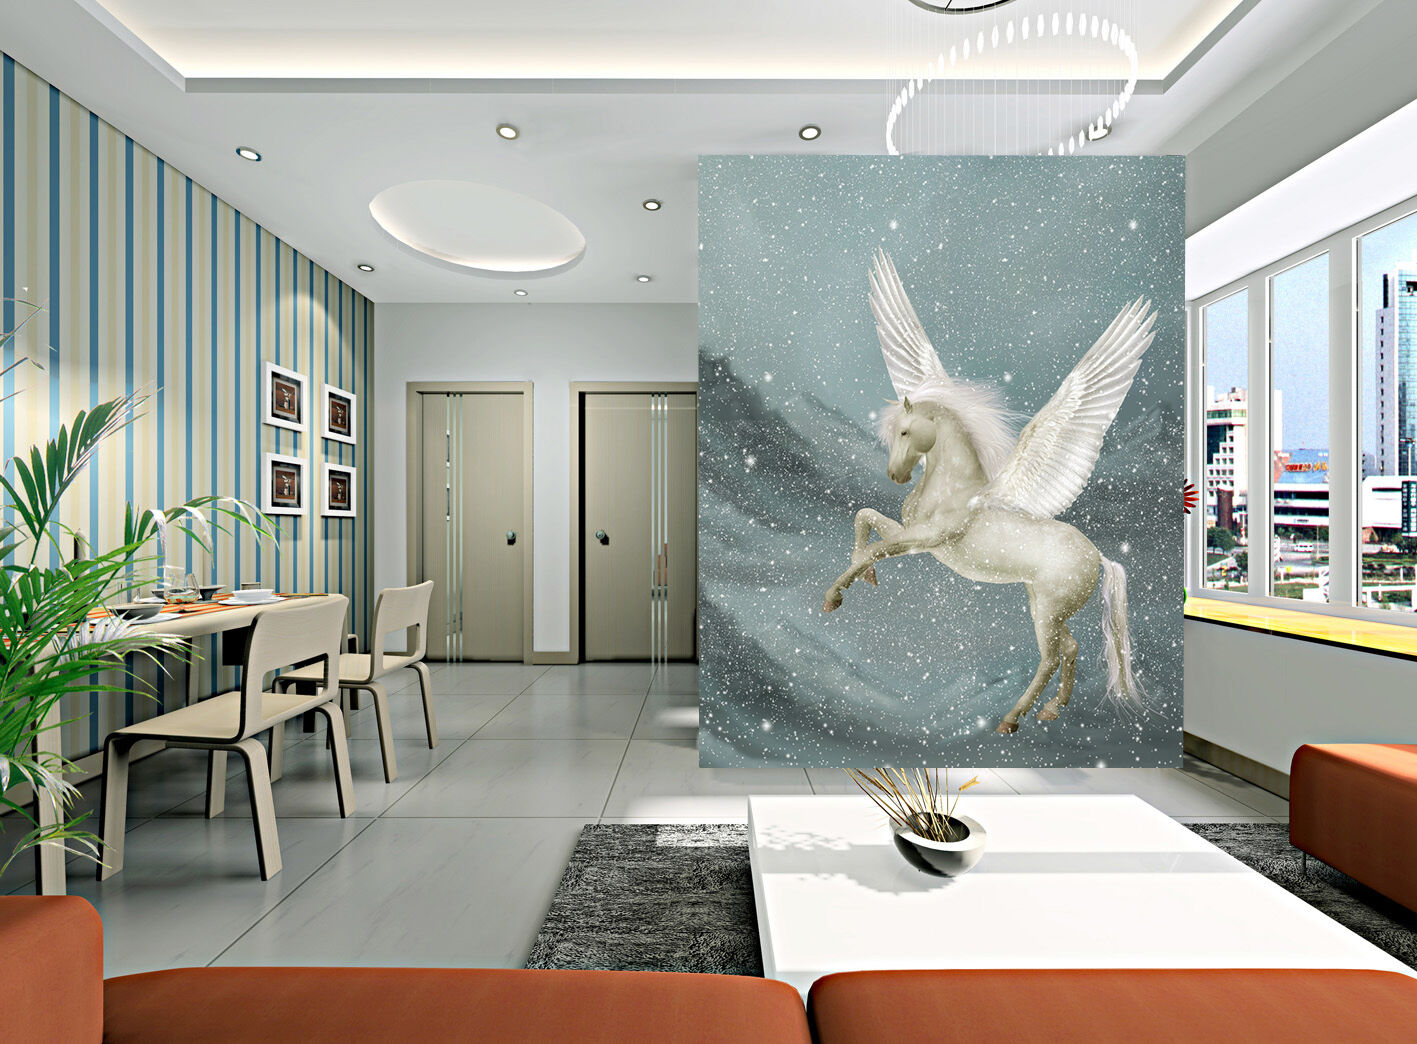 3D Flying Horse 0103 WallPaper Murals Wall Print Decal Wall Deco AJ WALLPAPER